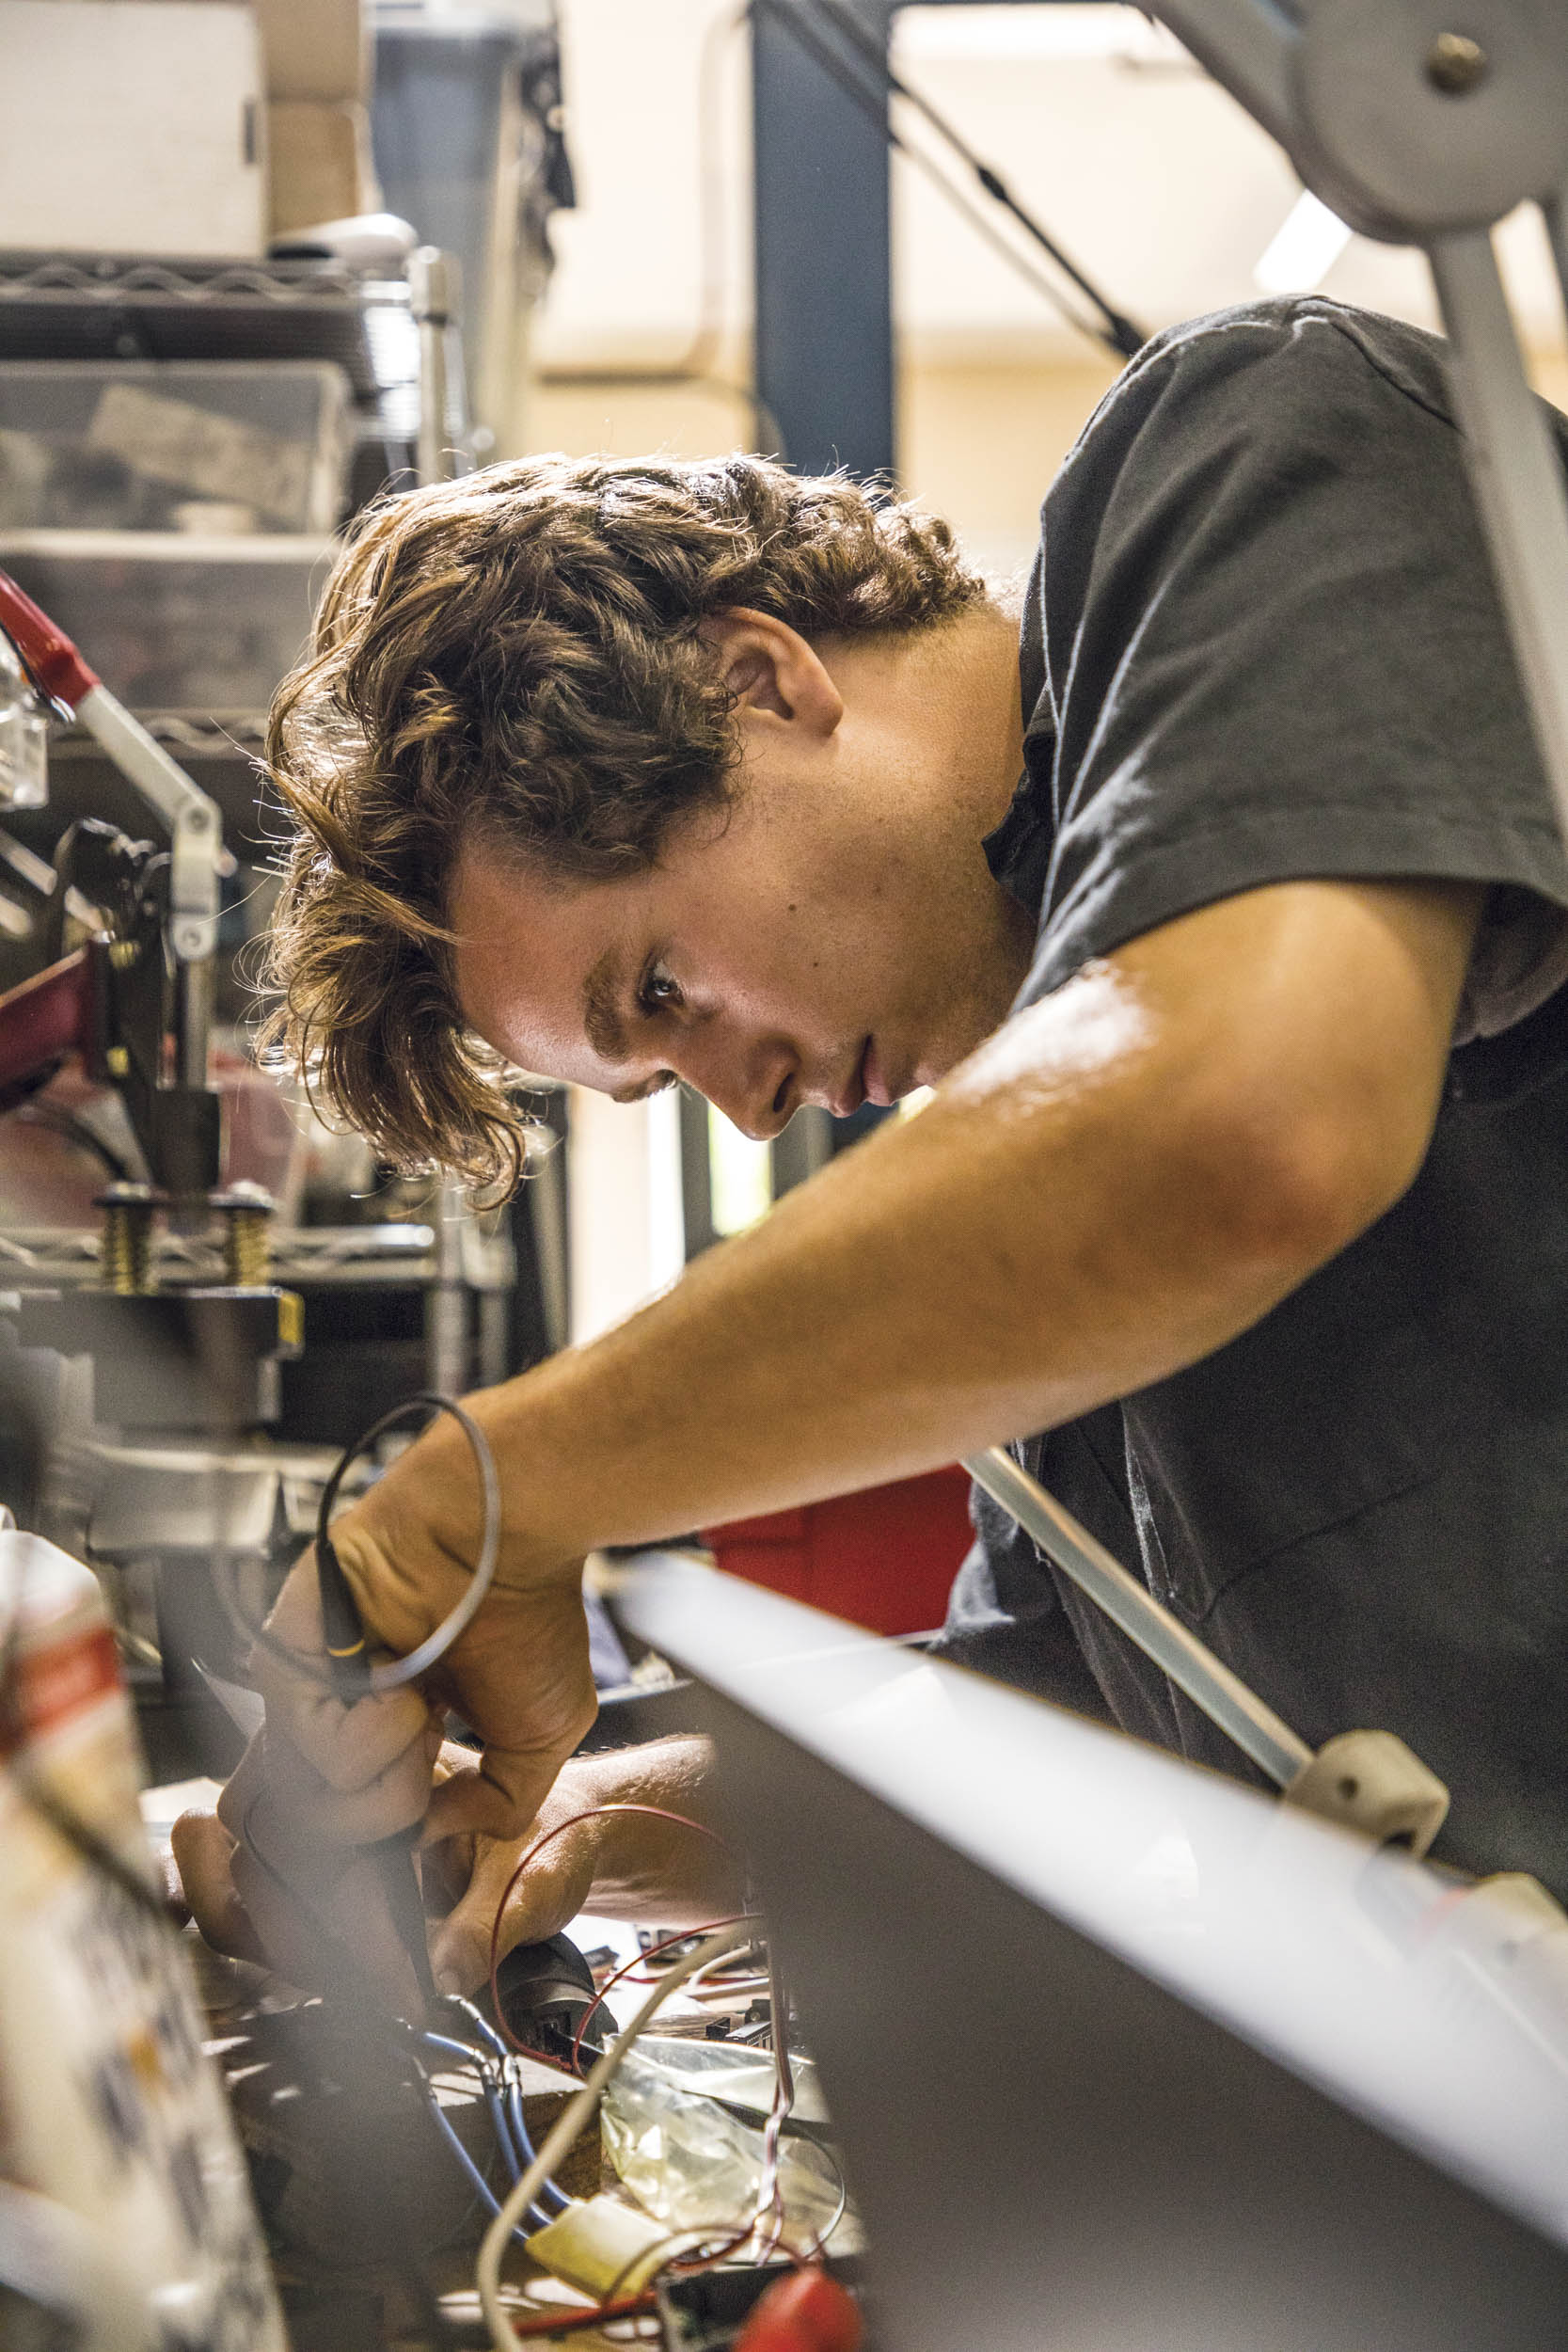 Milo Darling works on a control system at the EV West shop in San Marcos, which specializes in electric conversions.